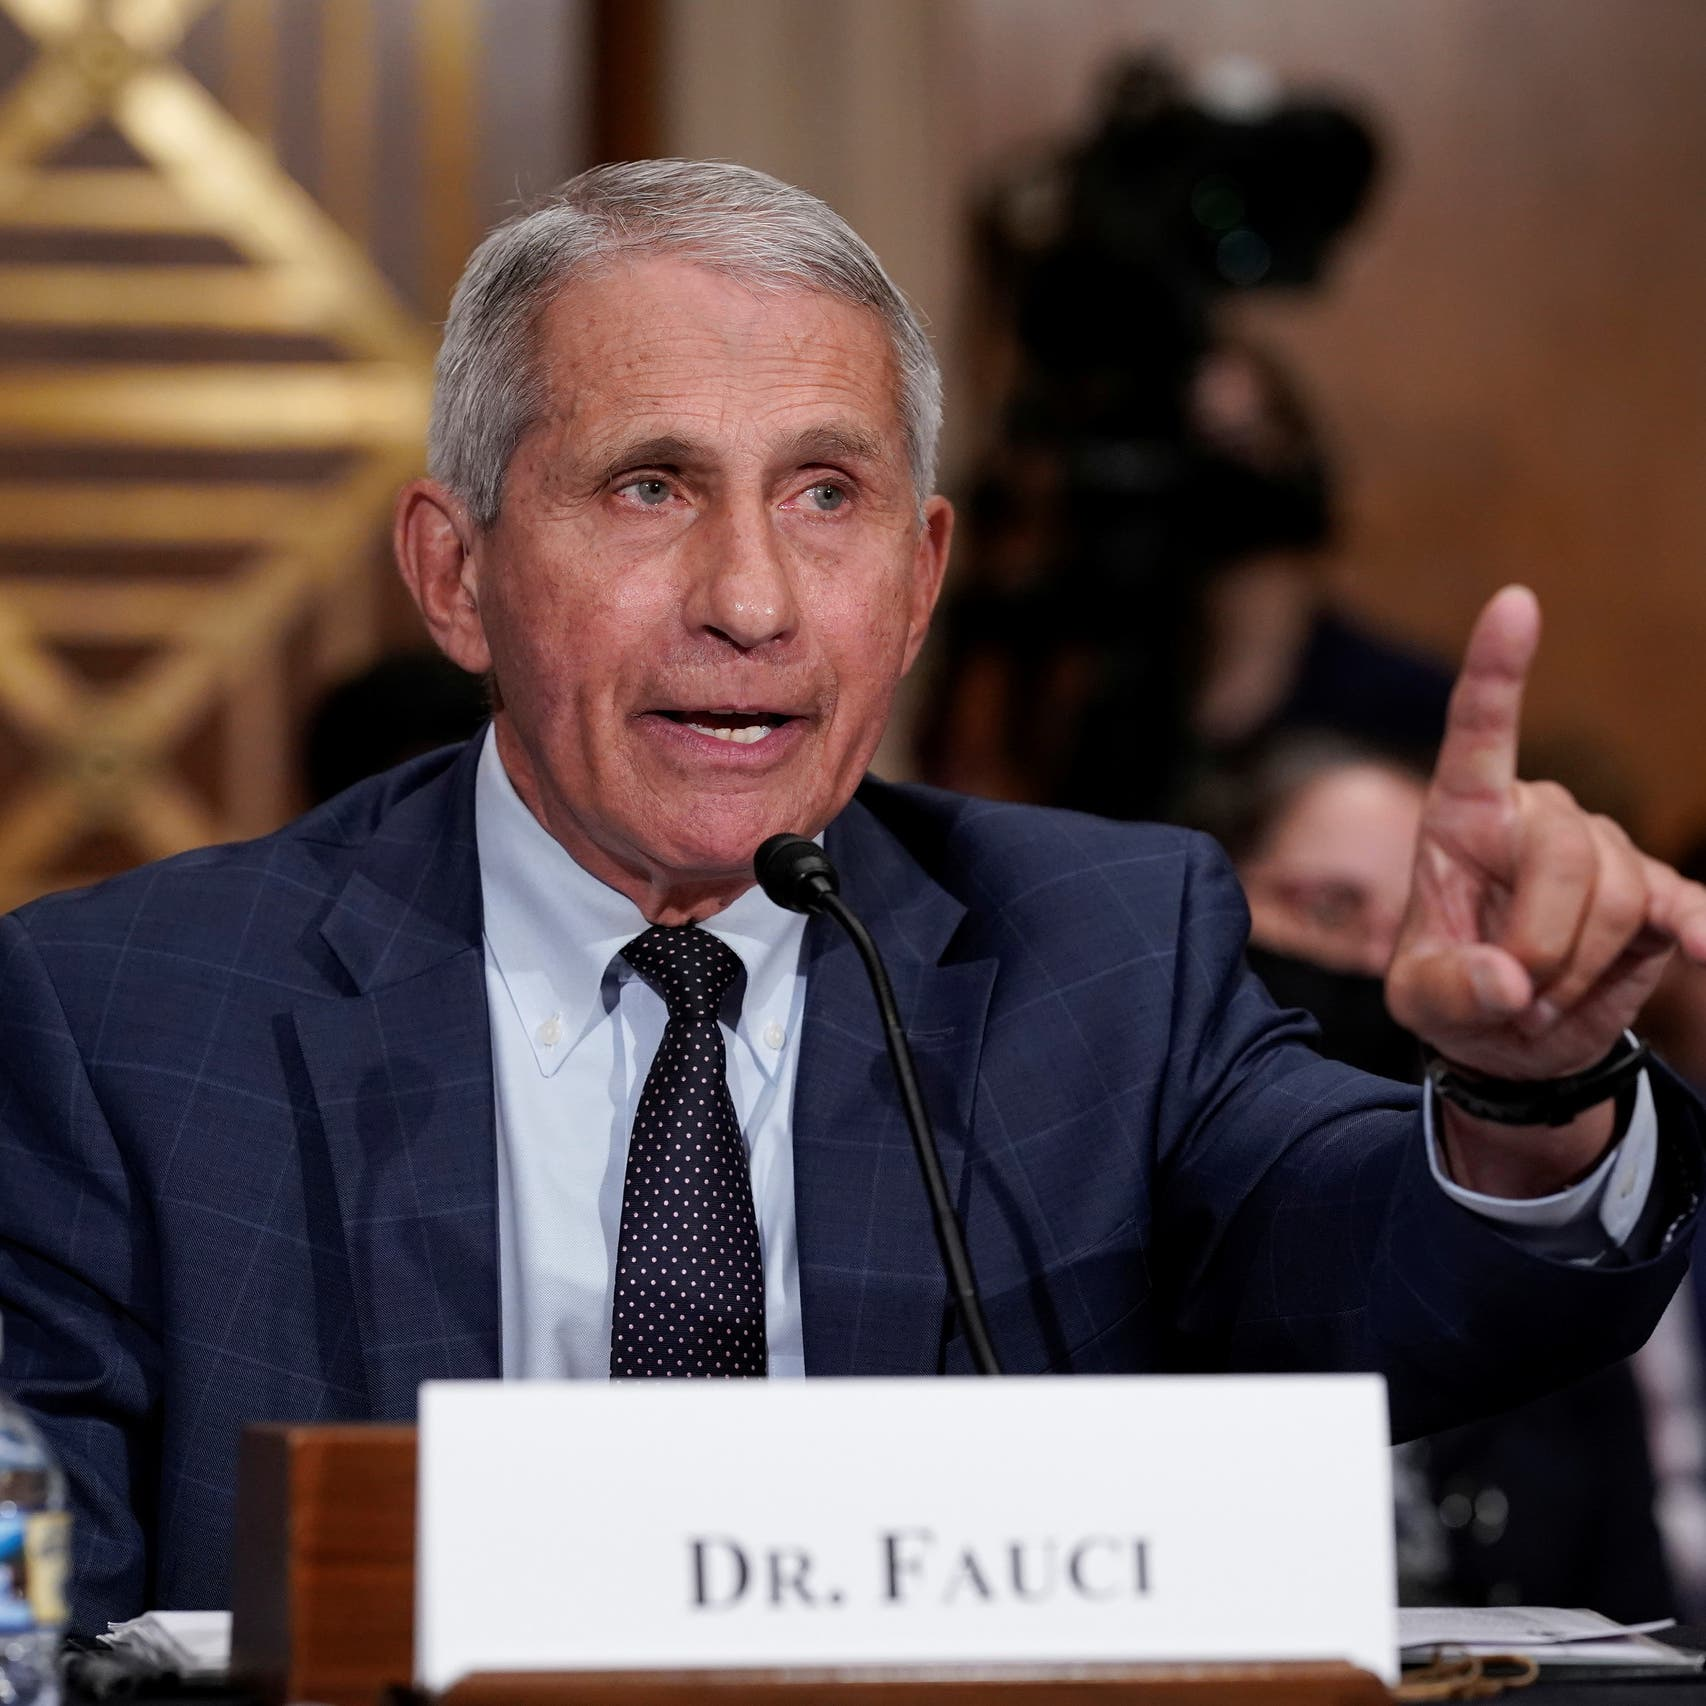 Booster shot will be recommended for weakened immune systems, says Dr. Fauci